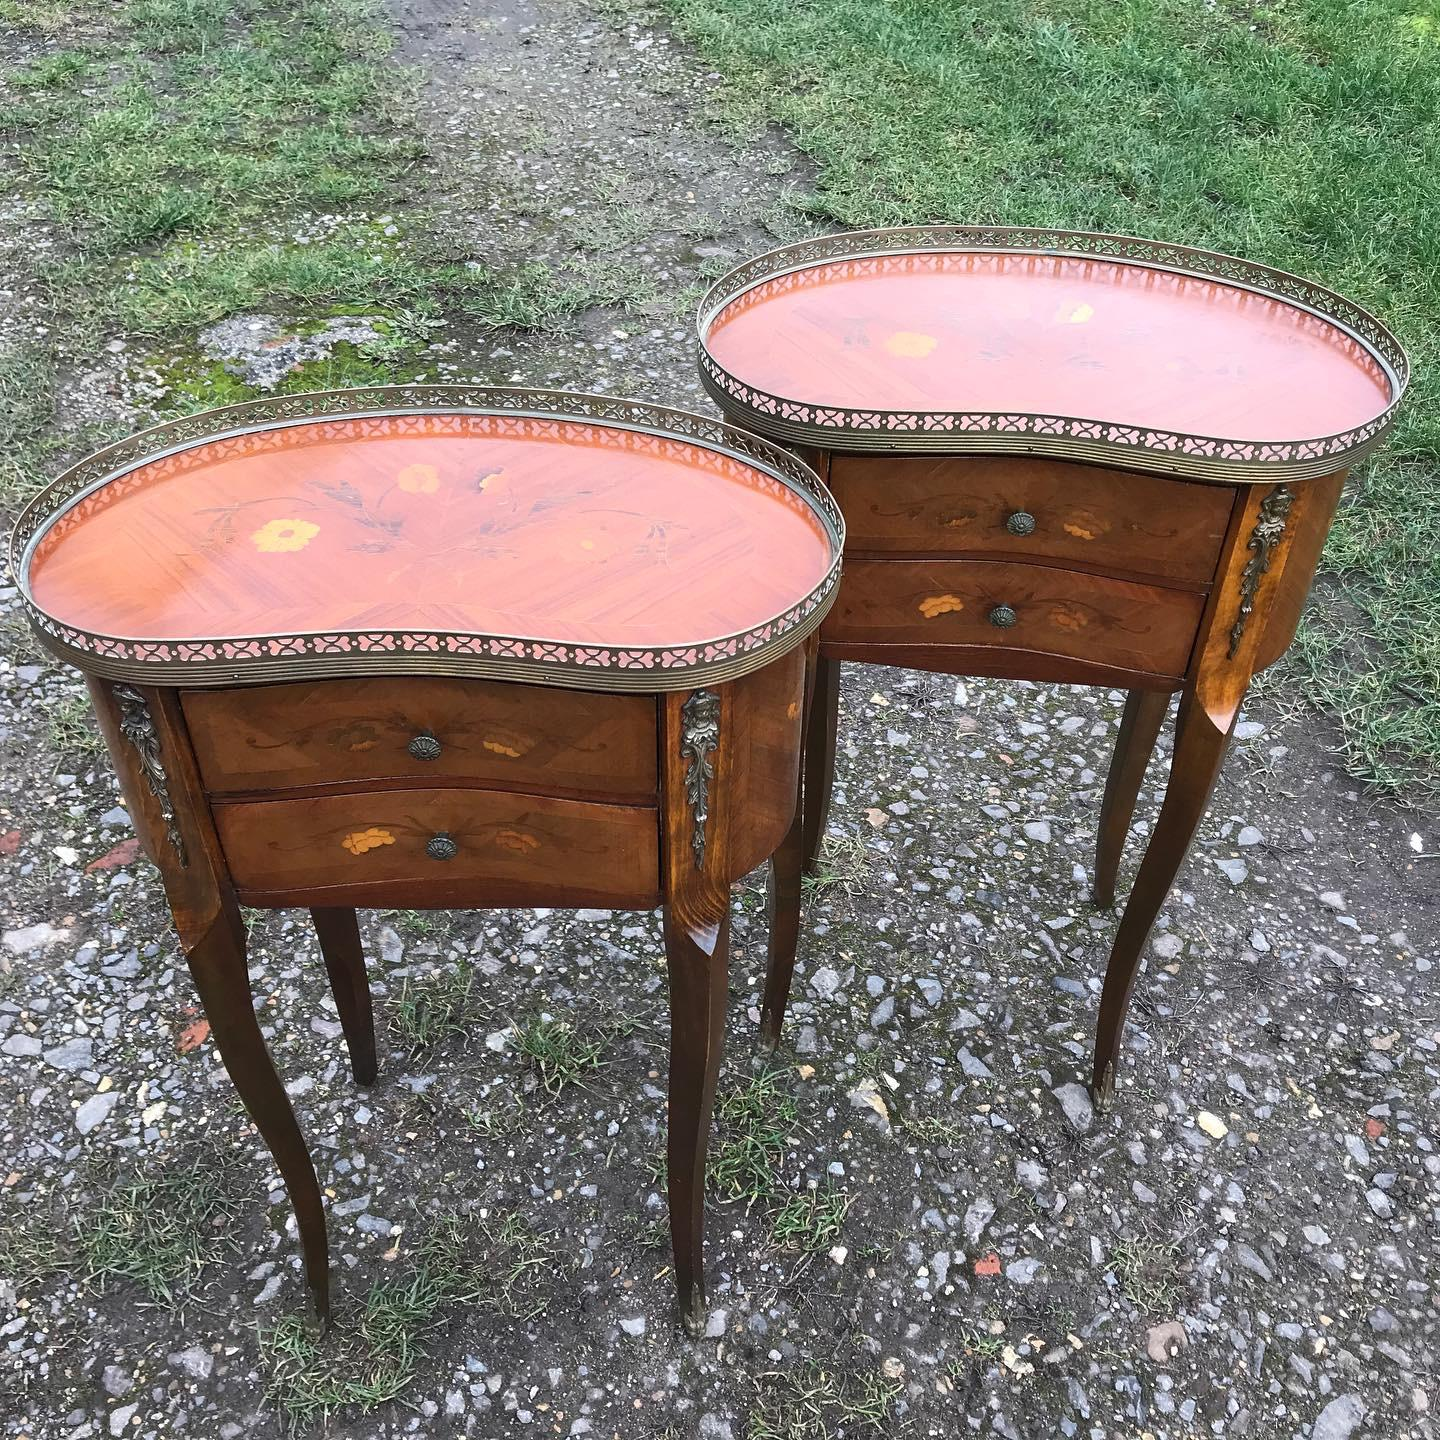 Pair of Inlaid Bedside Cabinets (1 of 1)